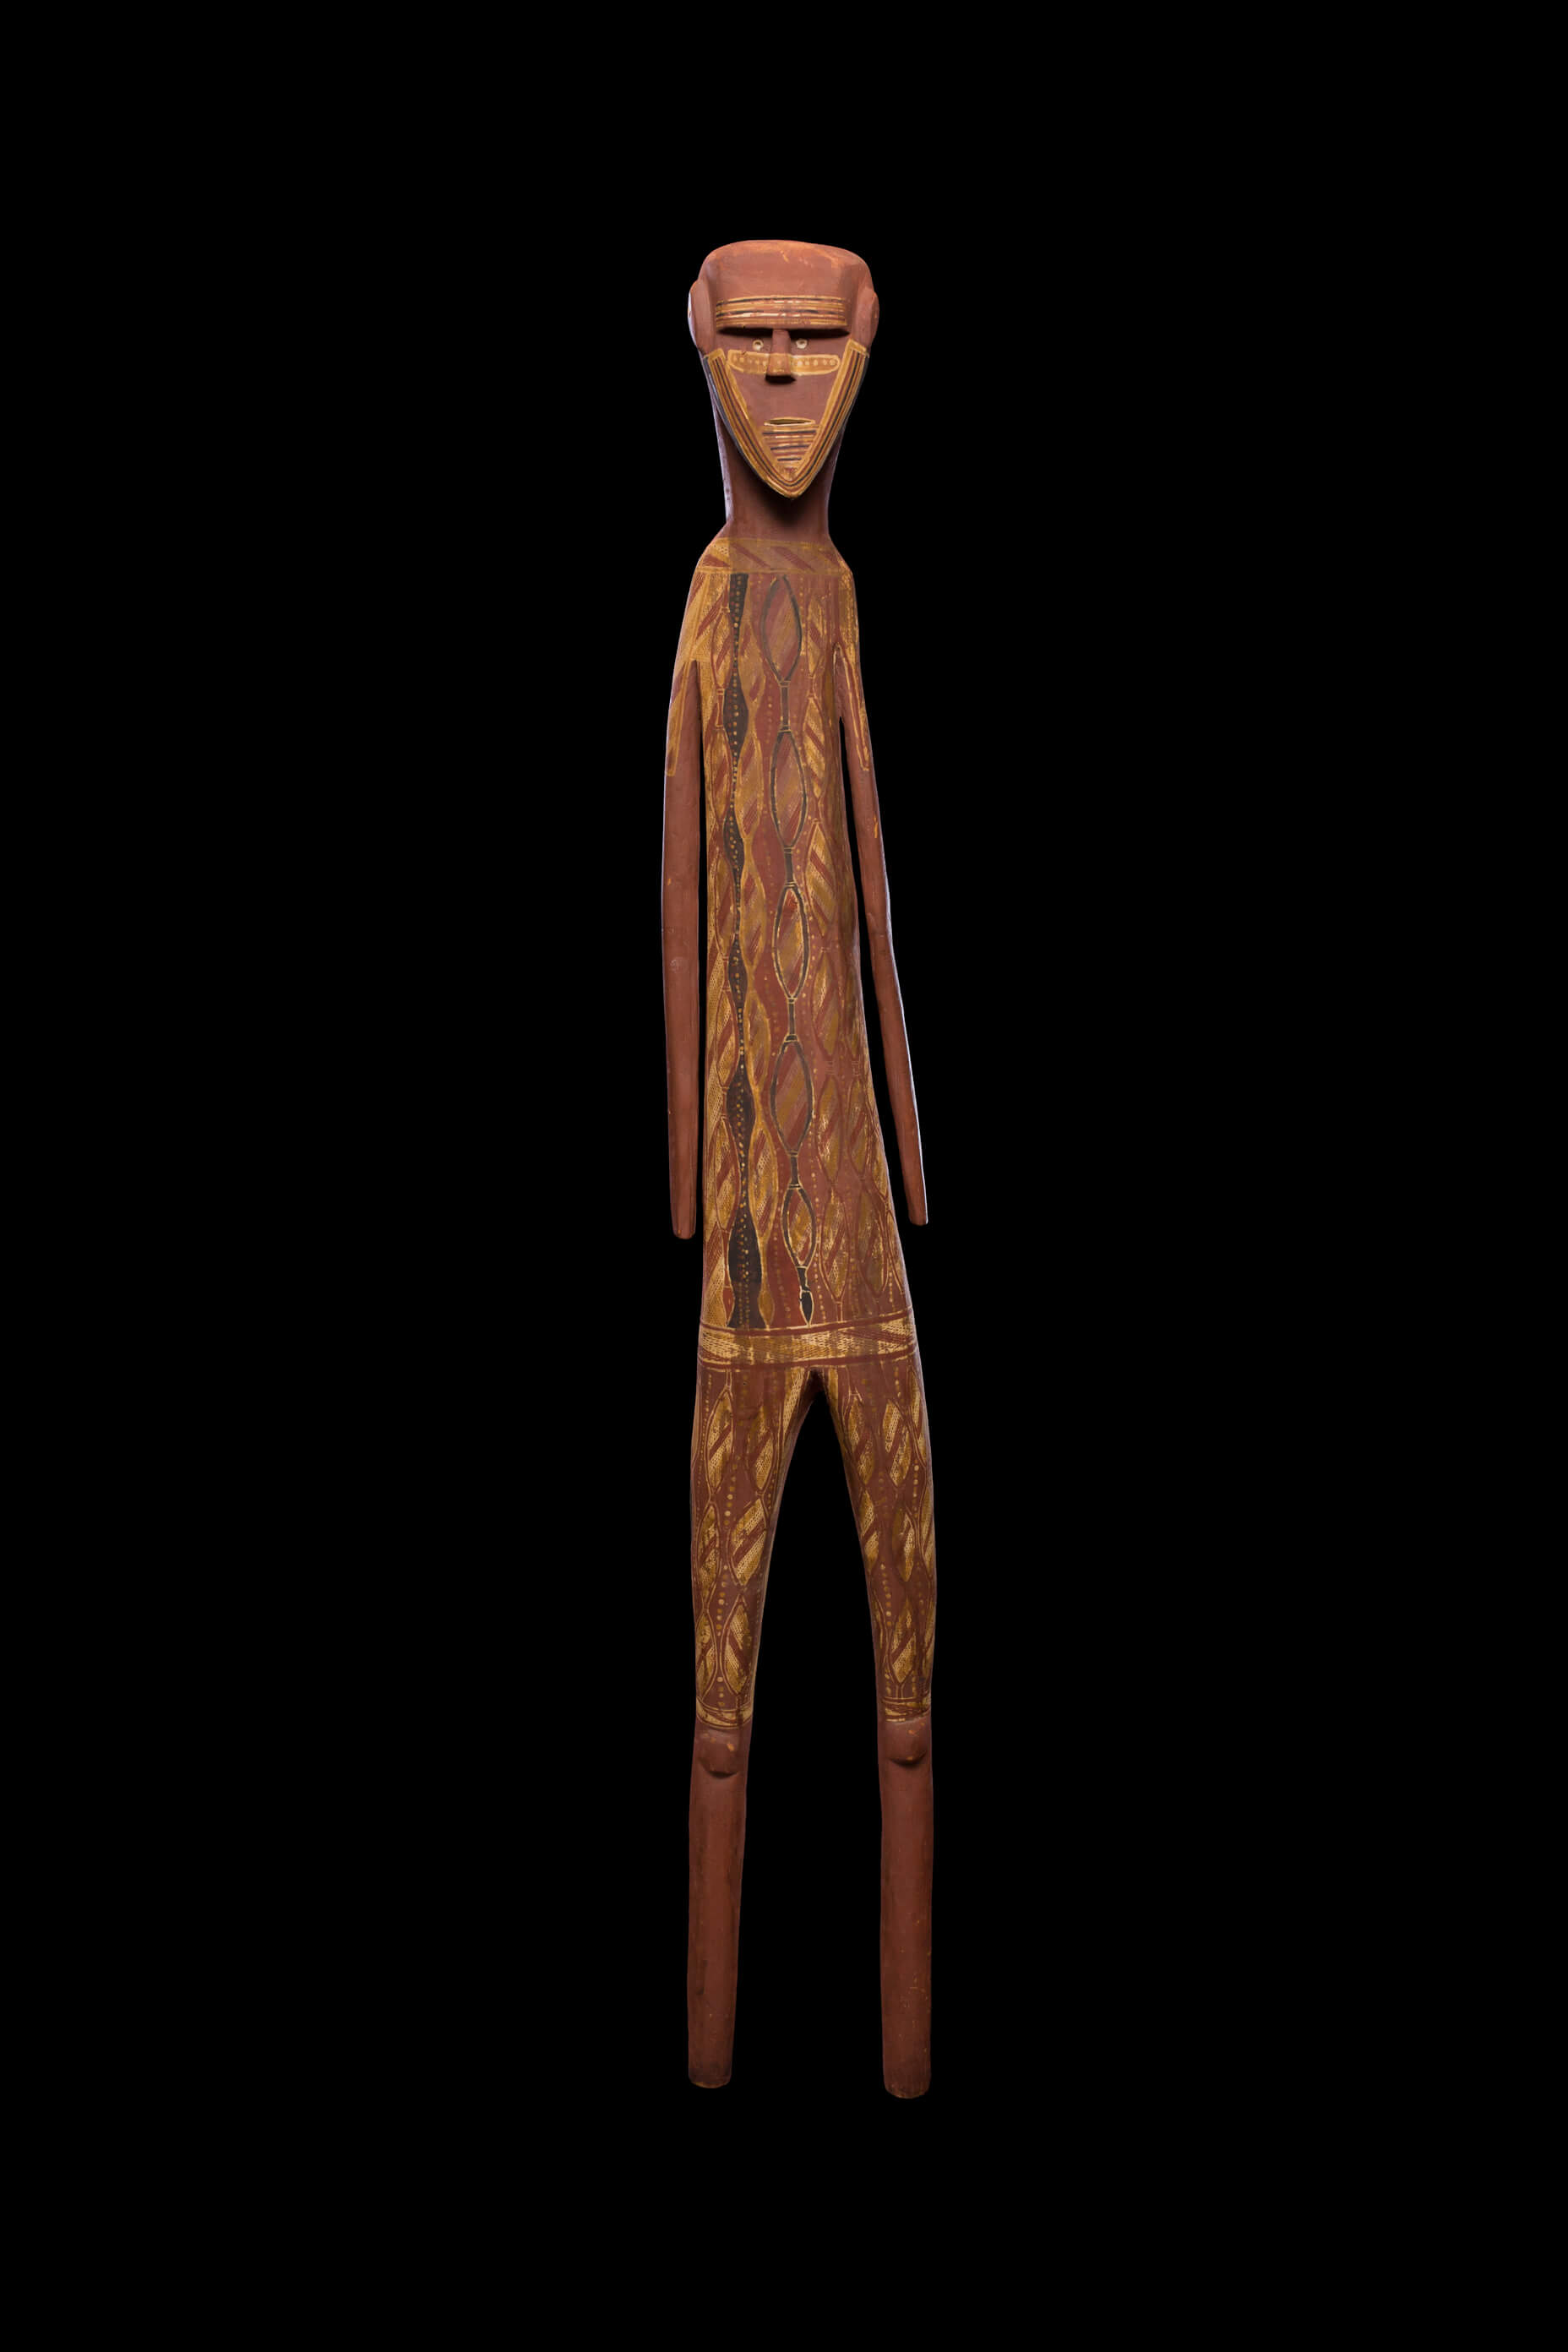 Lipundja I (circa 1912-1968) Gupapuyngu people, Milingimbi, Central Arnhem Land, Northern Territory Djalumbu Spirit, 1965 Natural earth pigments on carved softwood 205cm high